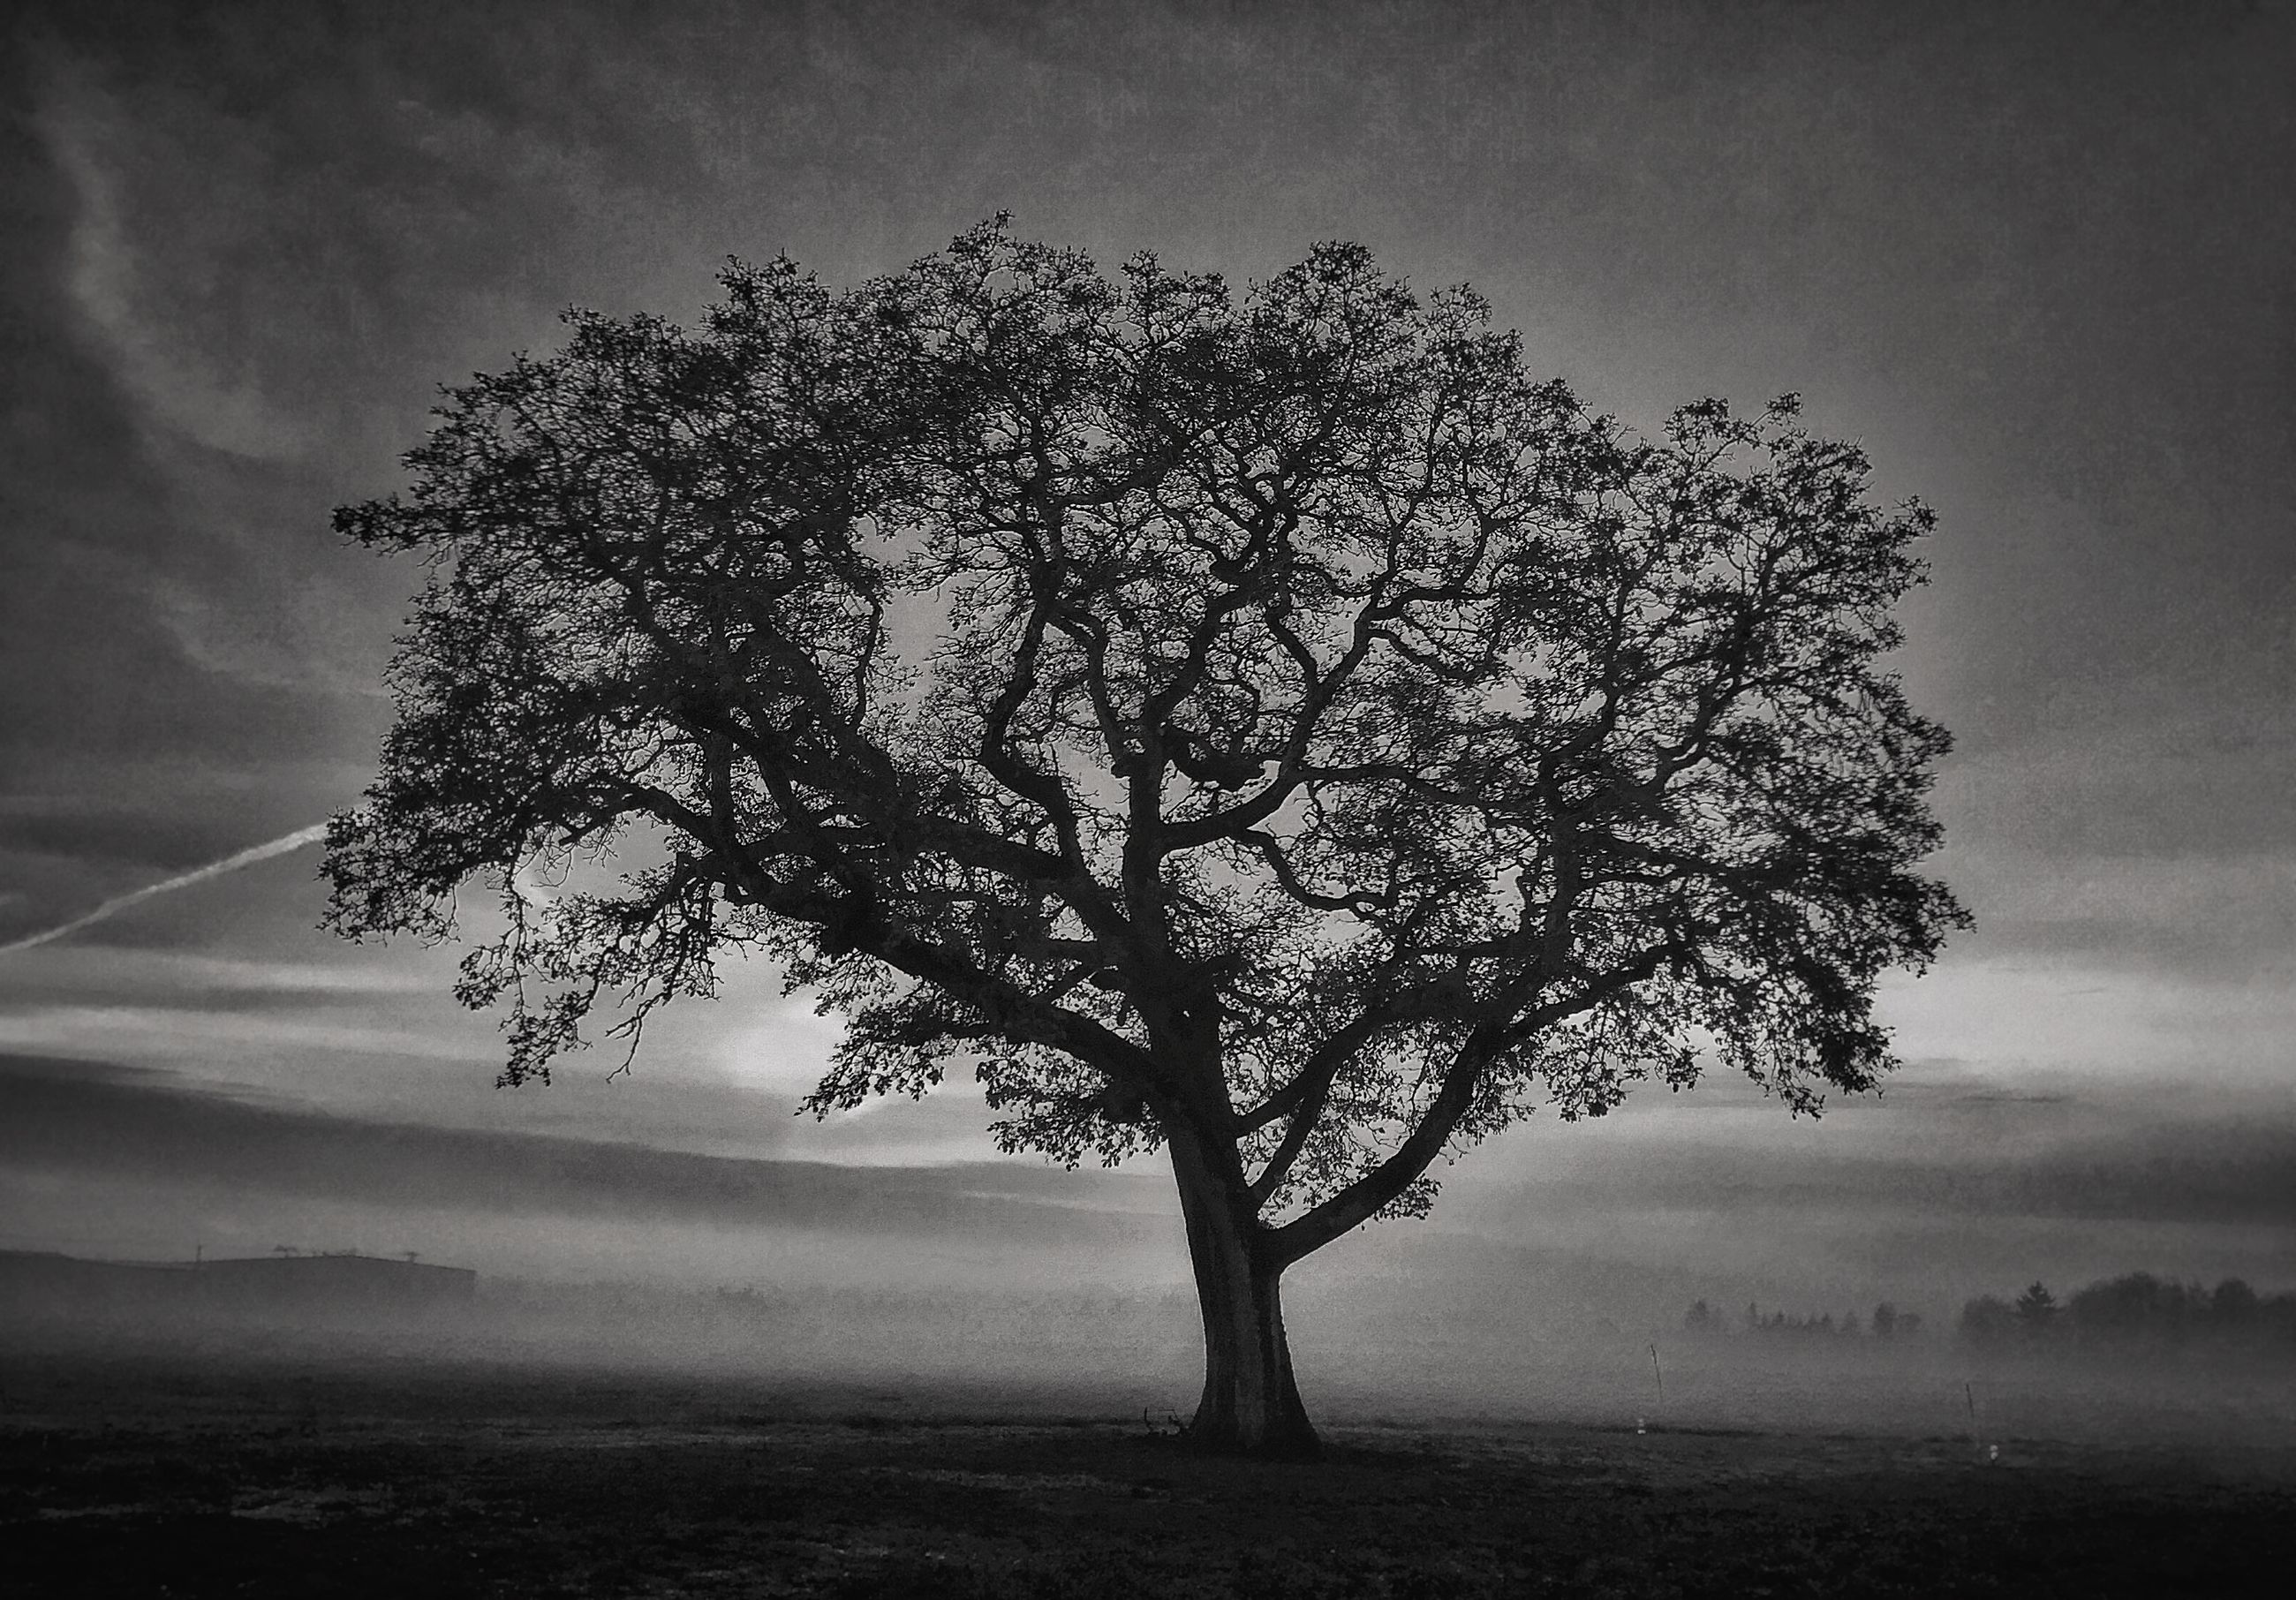 tree, tranquility, tranquil scene, beauty in nature, branch, nature, sky, silhouette, scenics, bare tree, growth, landscape, single tree, field, tree trunk, non-urban scene, idyllic, outdoors, dusk, no people